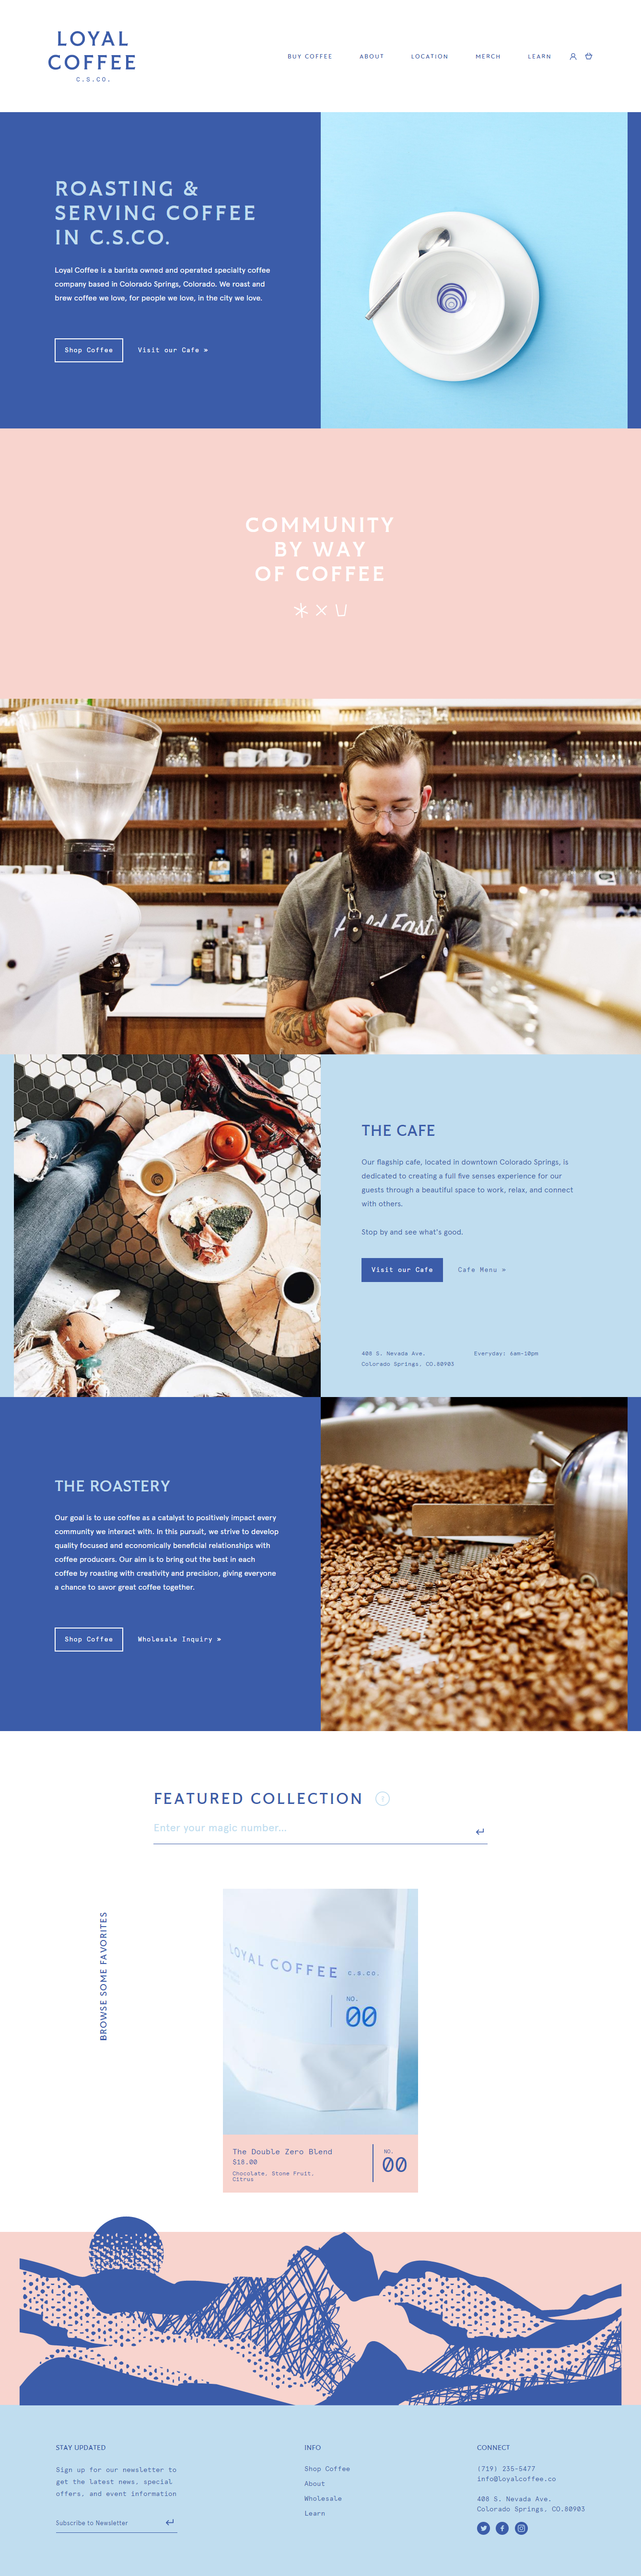 Loyal Coffee Landing Page Design Page Design Landing Page